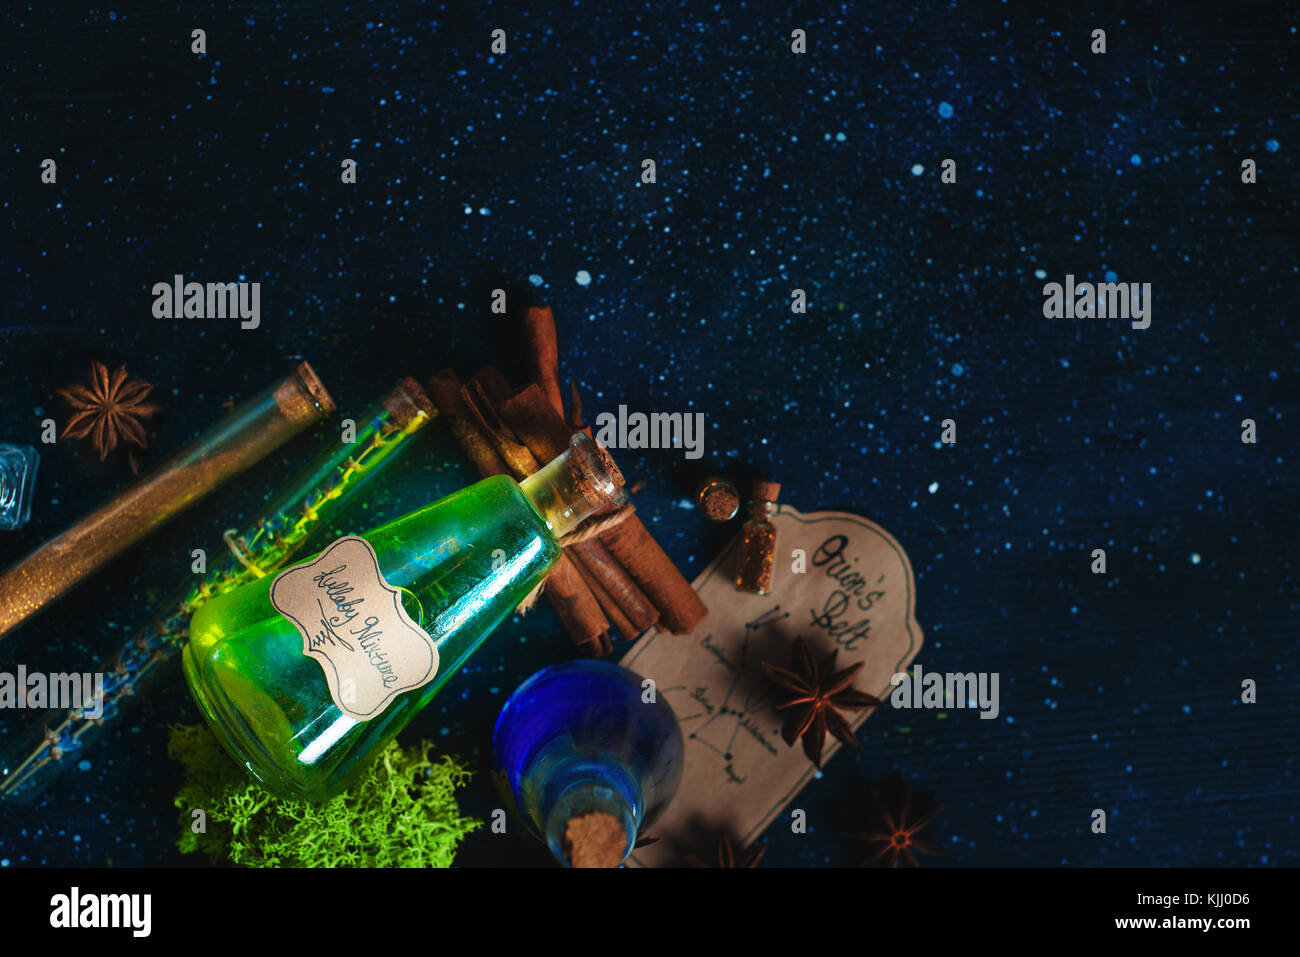 Magical potion of calmness and good sleep concept. Soothing mixture in a glass bottle with Lullaby Potion handwritten - Stock Image